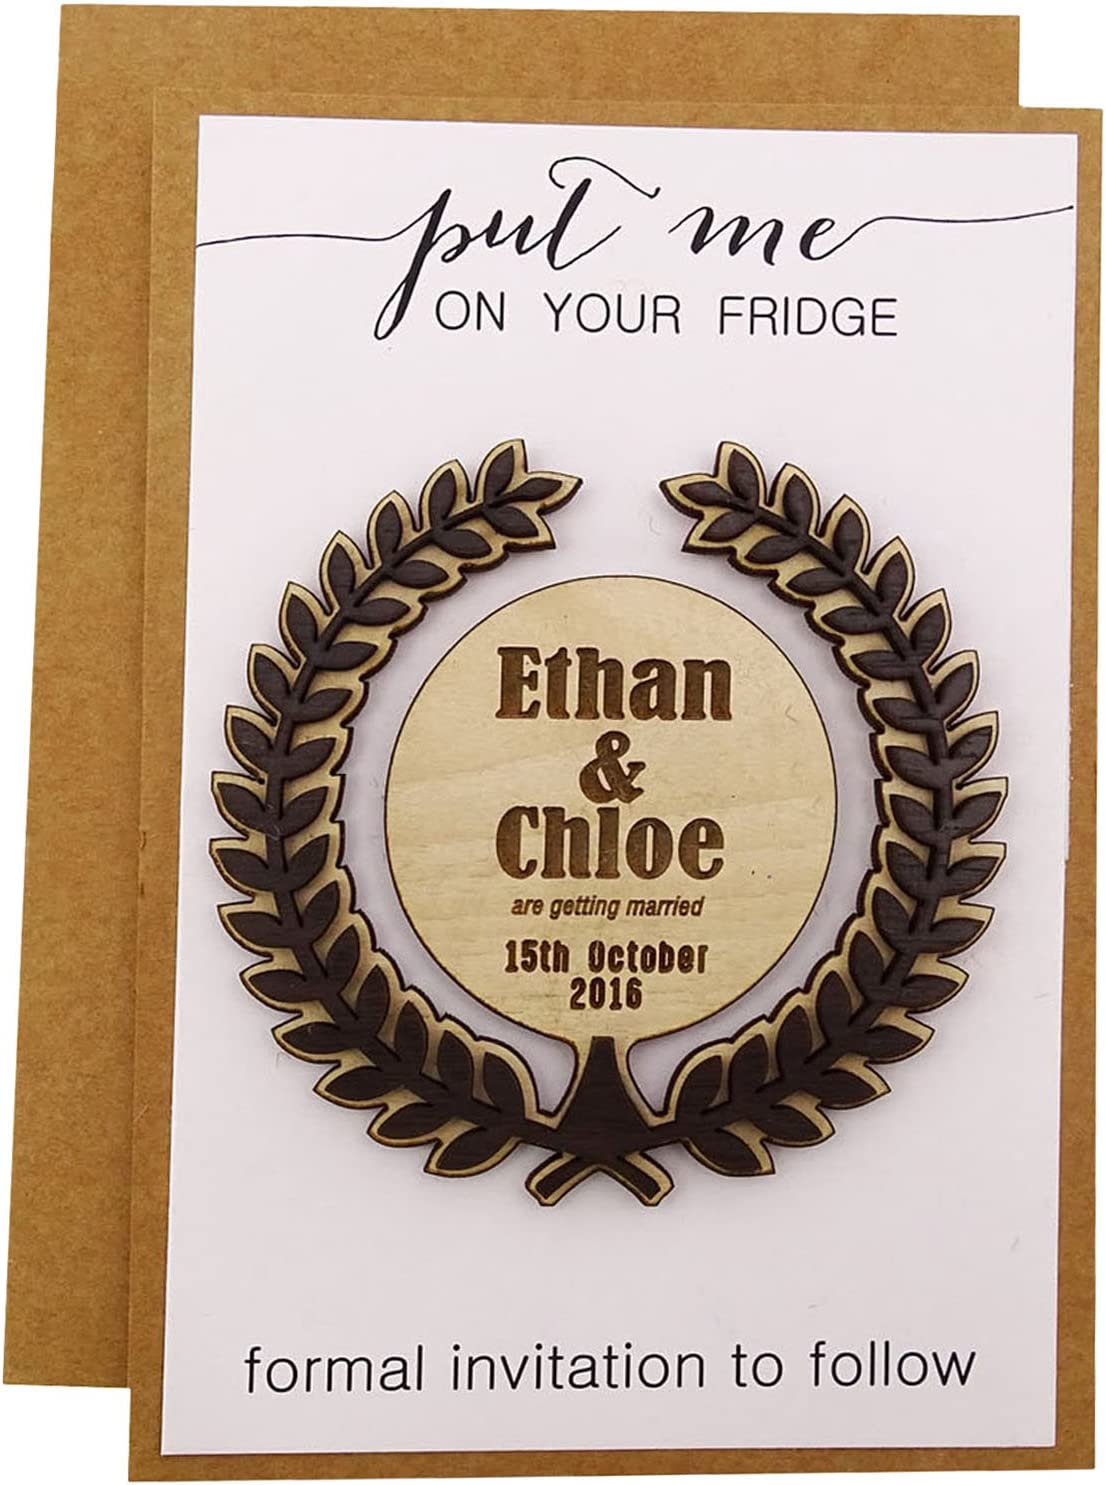 Personalized Save The Date Wooden Milwaukee Mall Clearance SALE! Limited time! Rustic Magnets Wed 20 Engraved